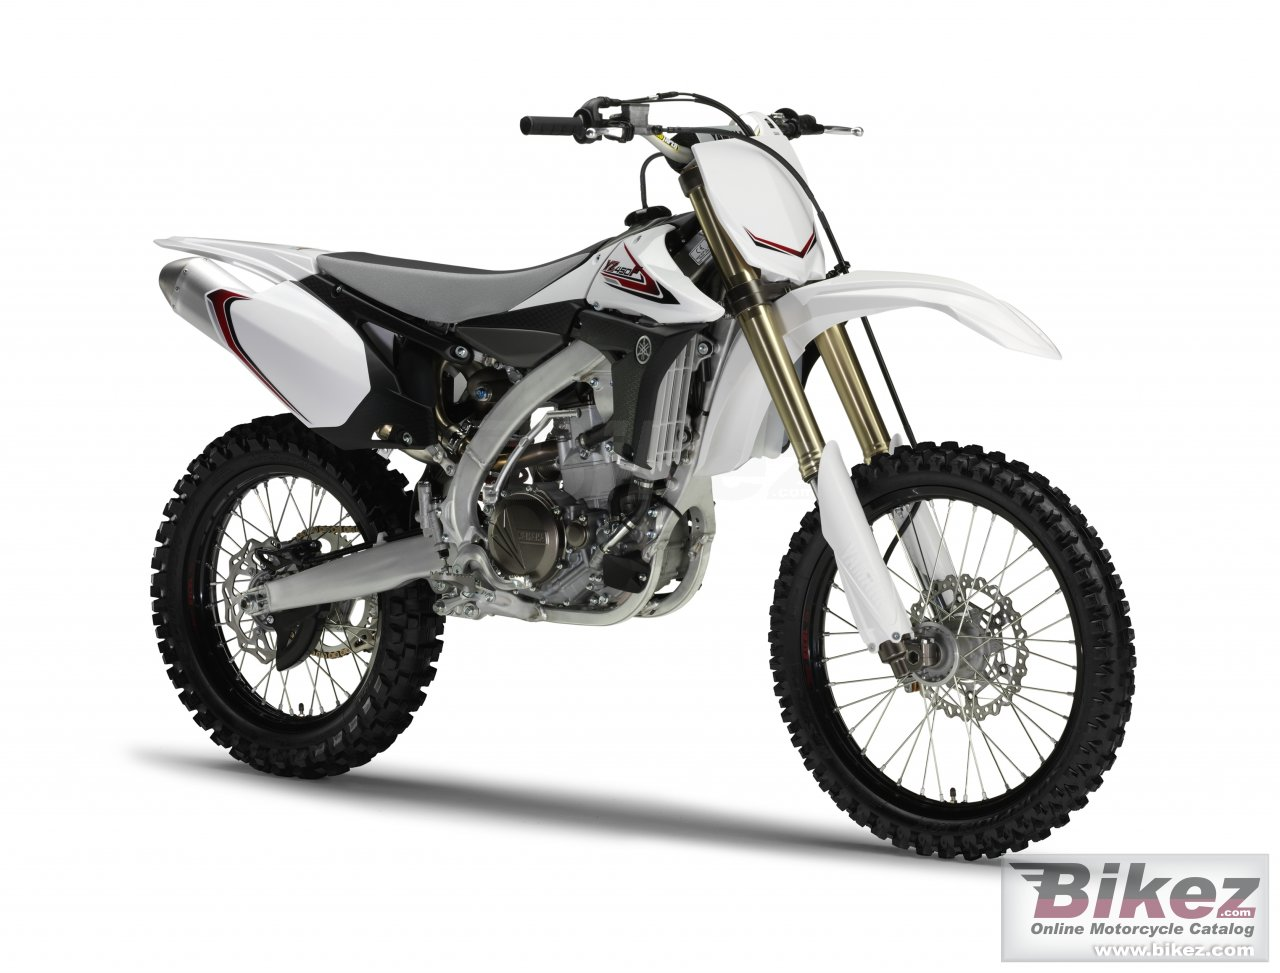 Big Yamaha yz450f picture and wallpaper from Bikez.com